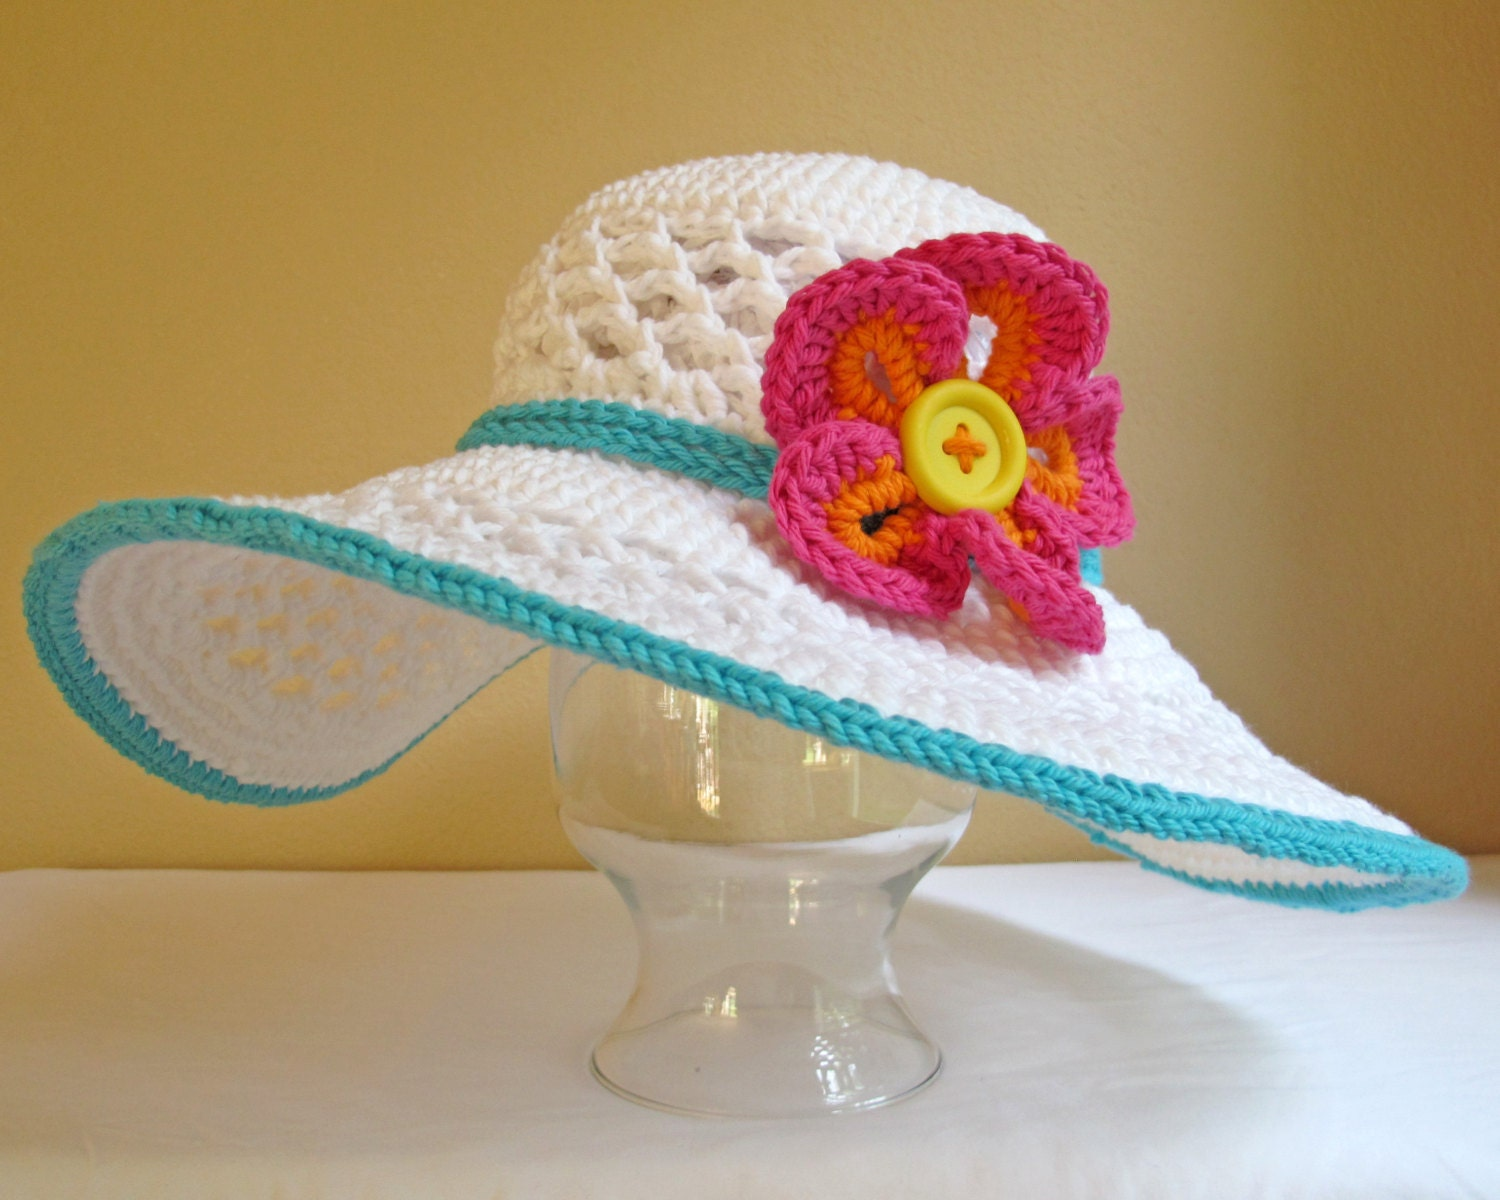 CROCHET PATTERN Aloha a crochet sun hat pattern beach